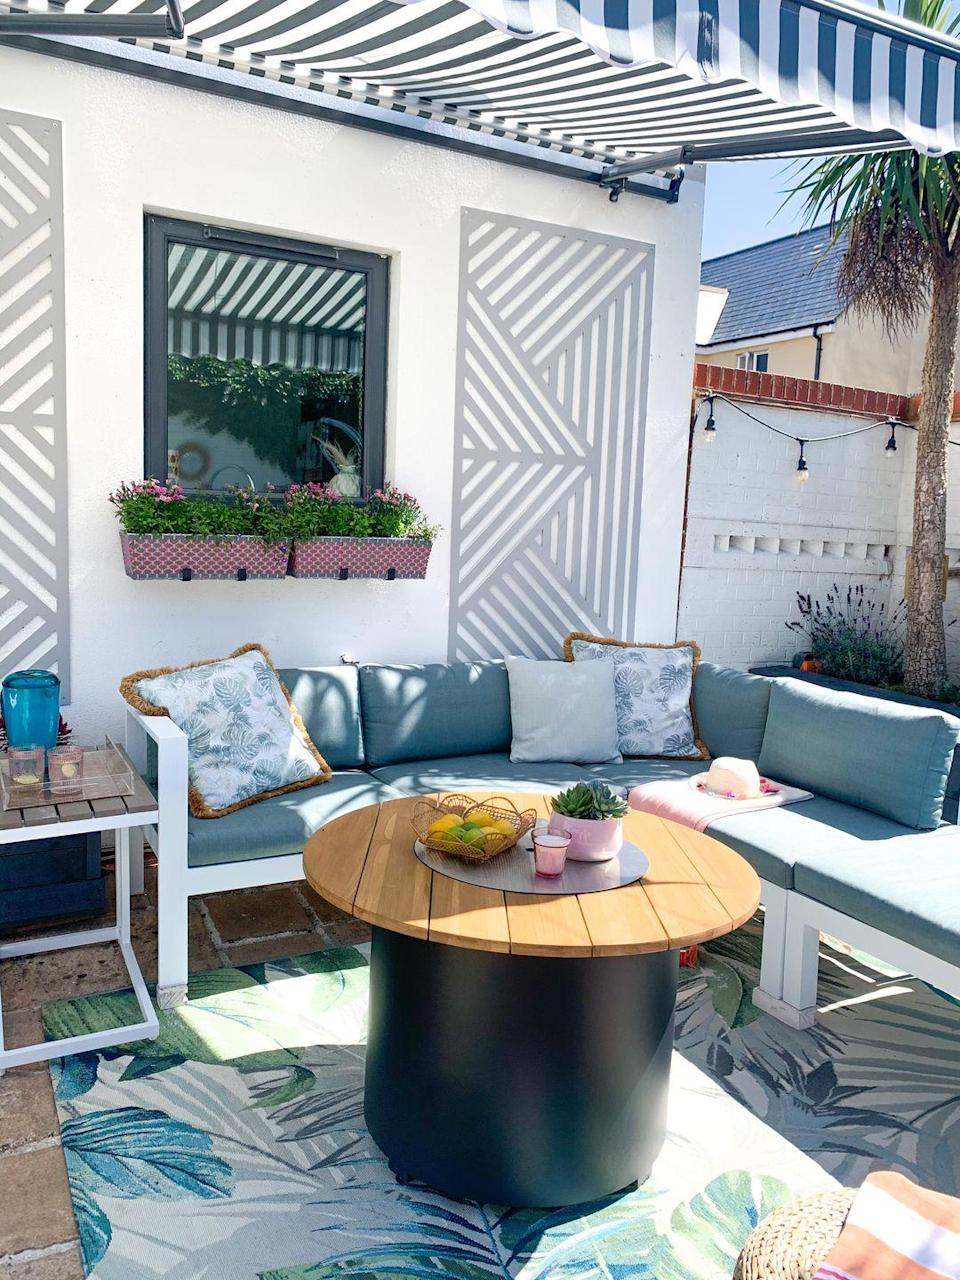 <p>How inviting does this outdoor seating area look? From the garden cushions to the tropical rug, it's the perfect place for whiling away a lazy summer's afternoon. </p>